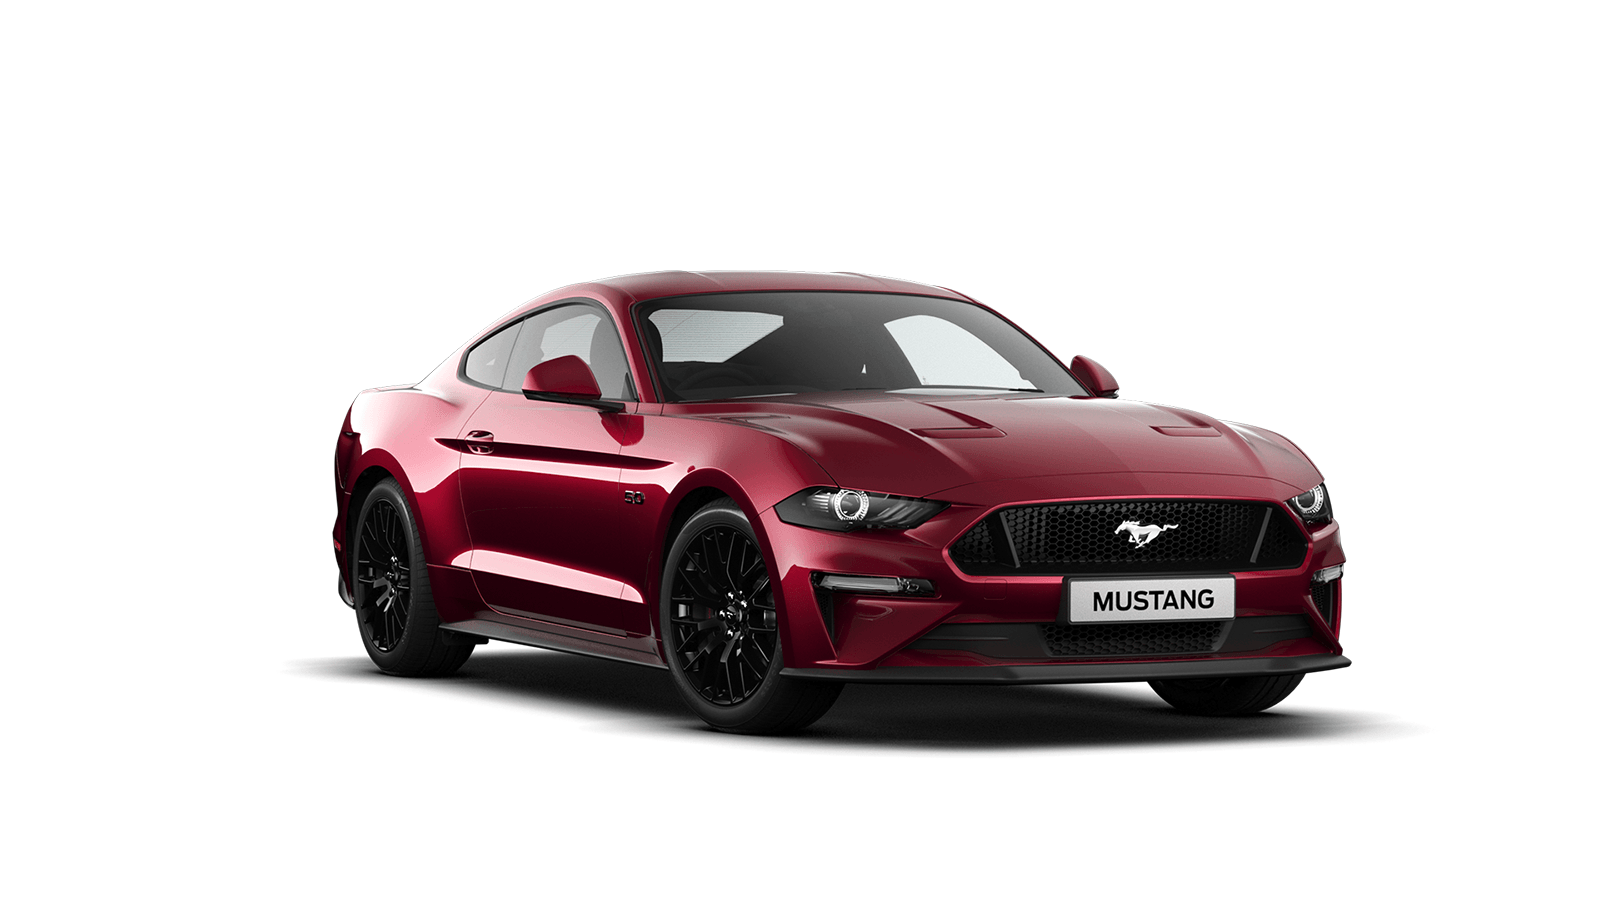 https://www.dealerinternet.co.uk/images/MUSTANG/2019/Fastback/5.0V8GT/RUBY-RED.png